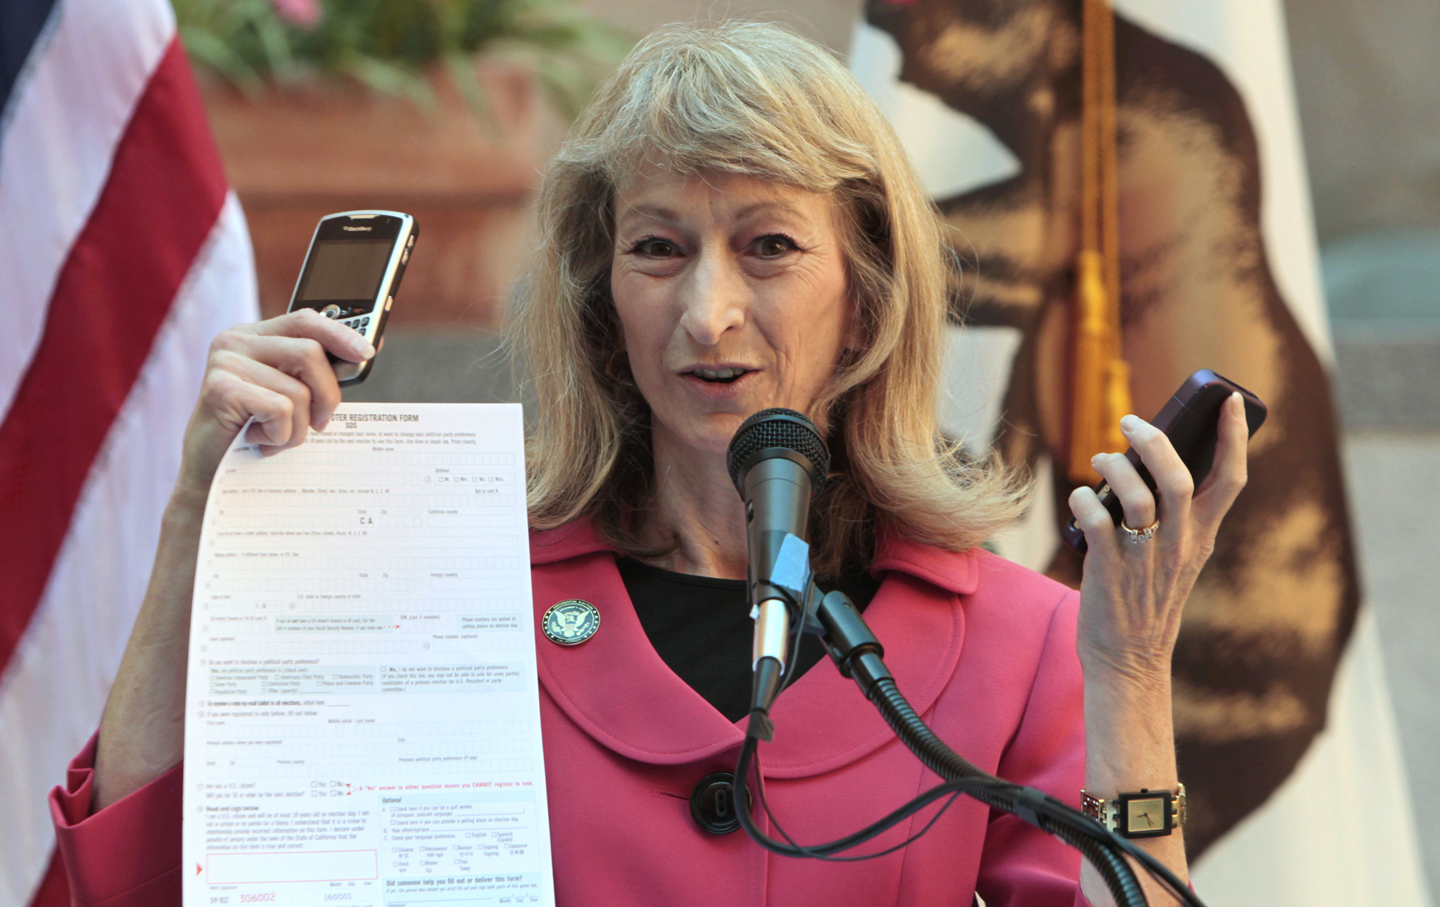 California Secretary of State Debra Bowen displays cellphones and a paper form following the signing of California's new online voter registration bill.